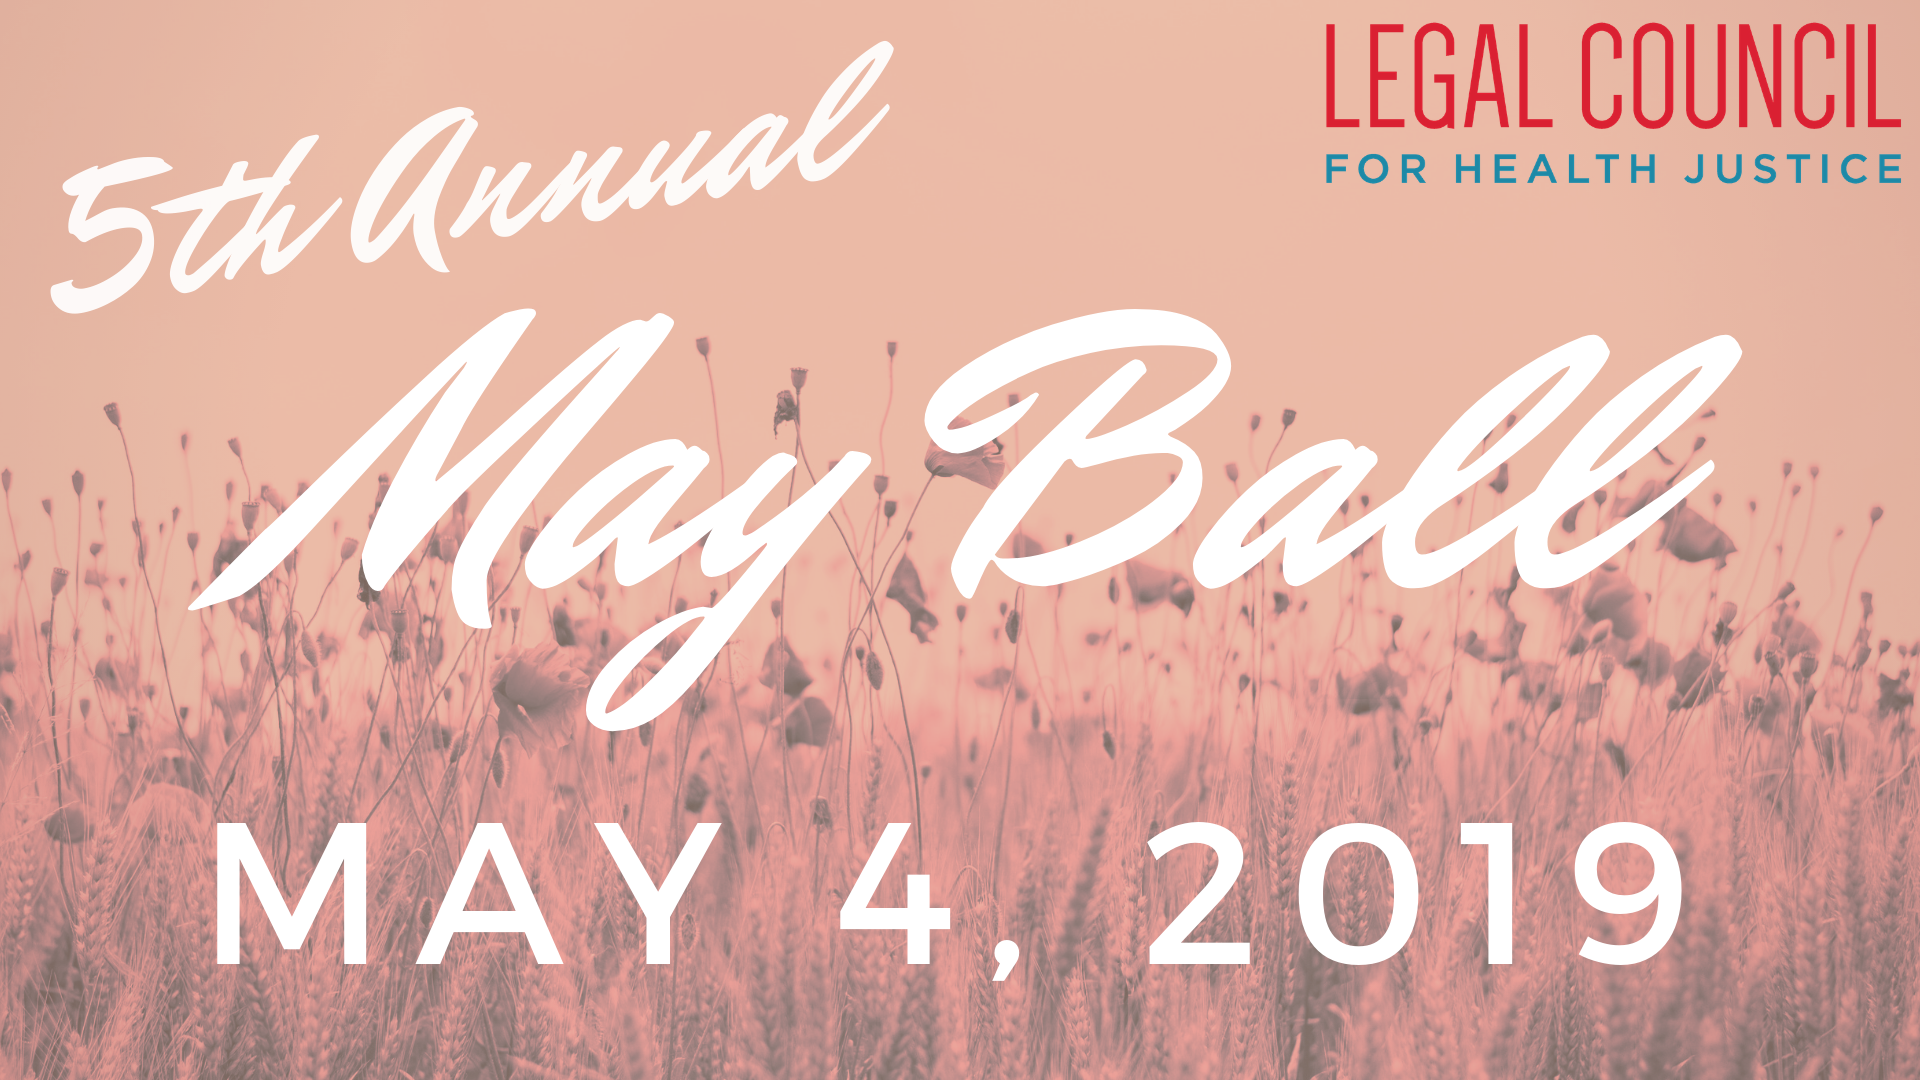 Legal Council 5th Annual May Ball - May 4, 2019